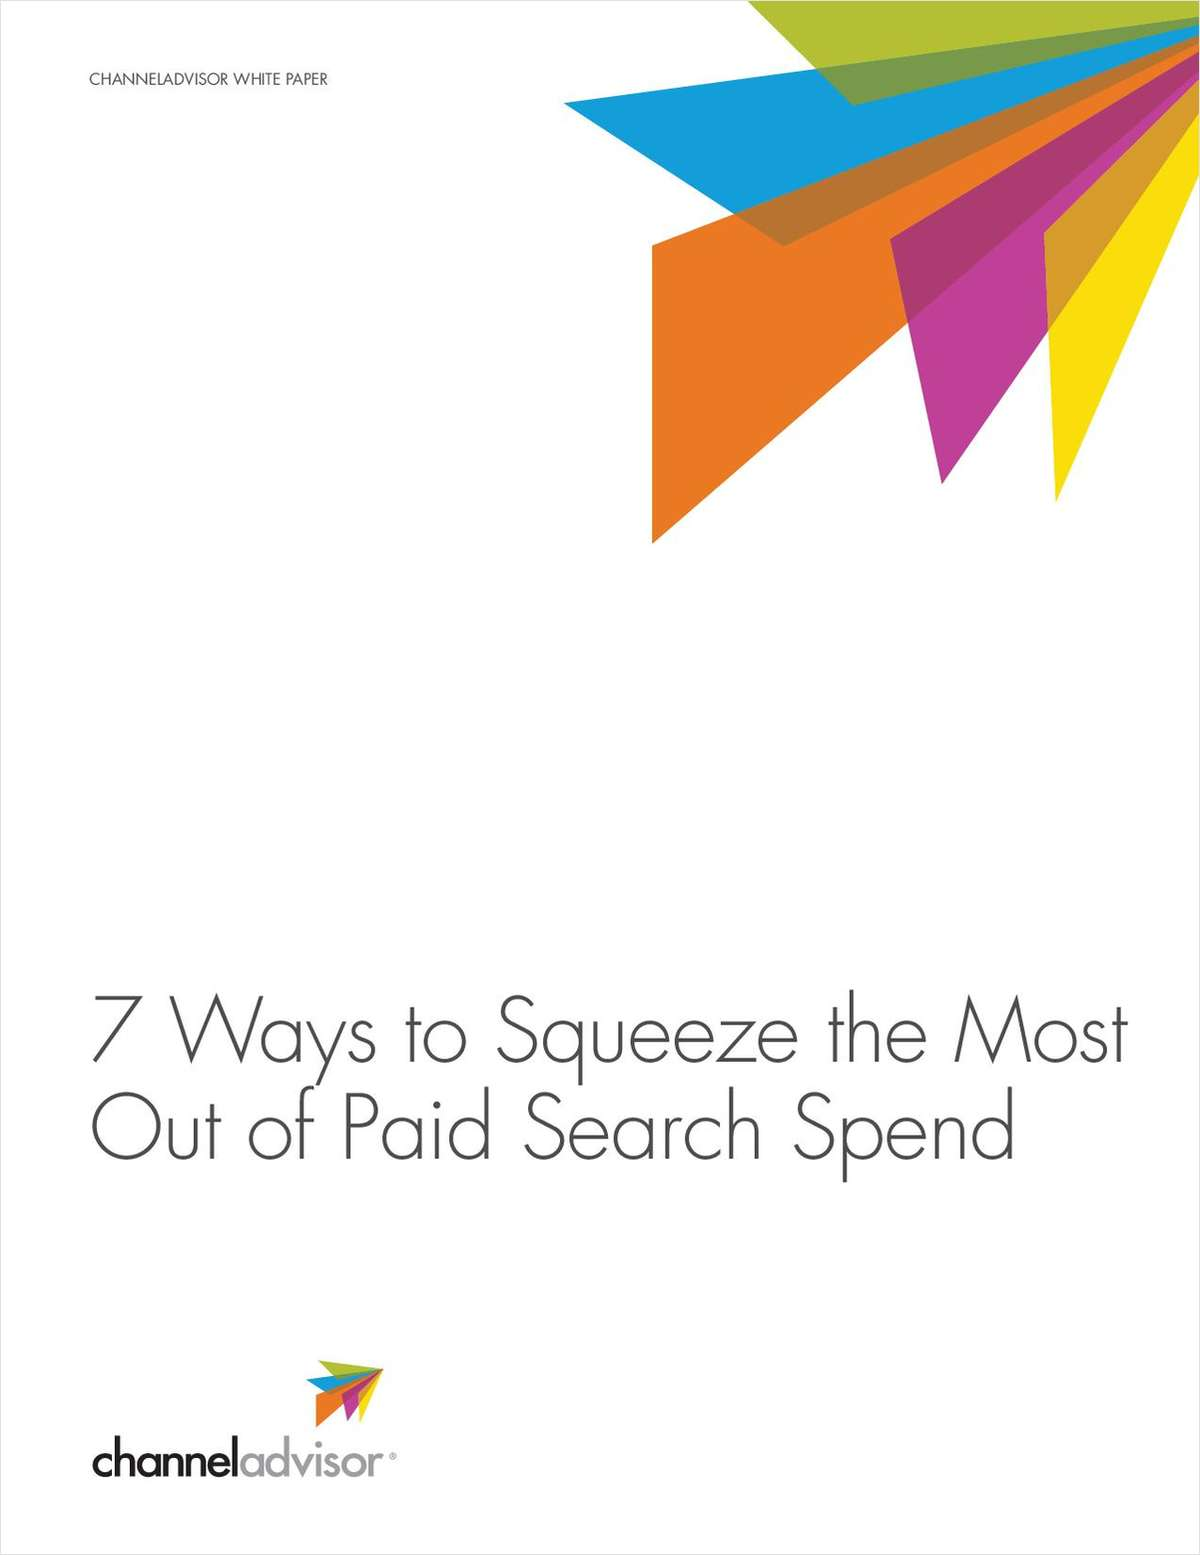 7 Ways to Squeeze the Most Out of Paid Search Spend